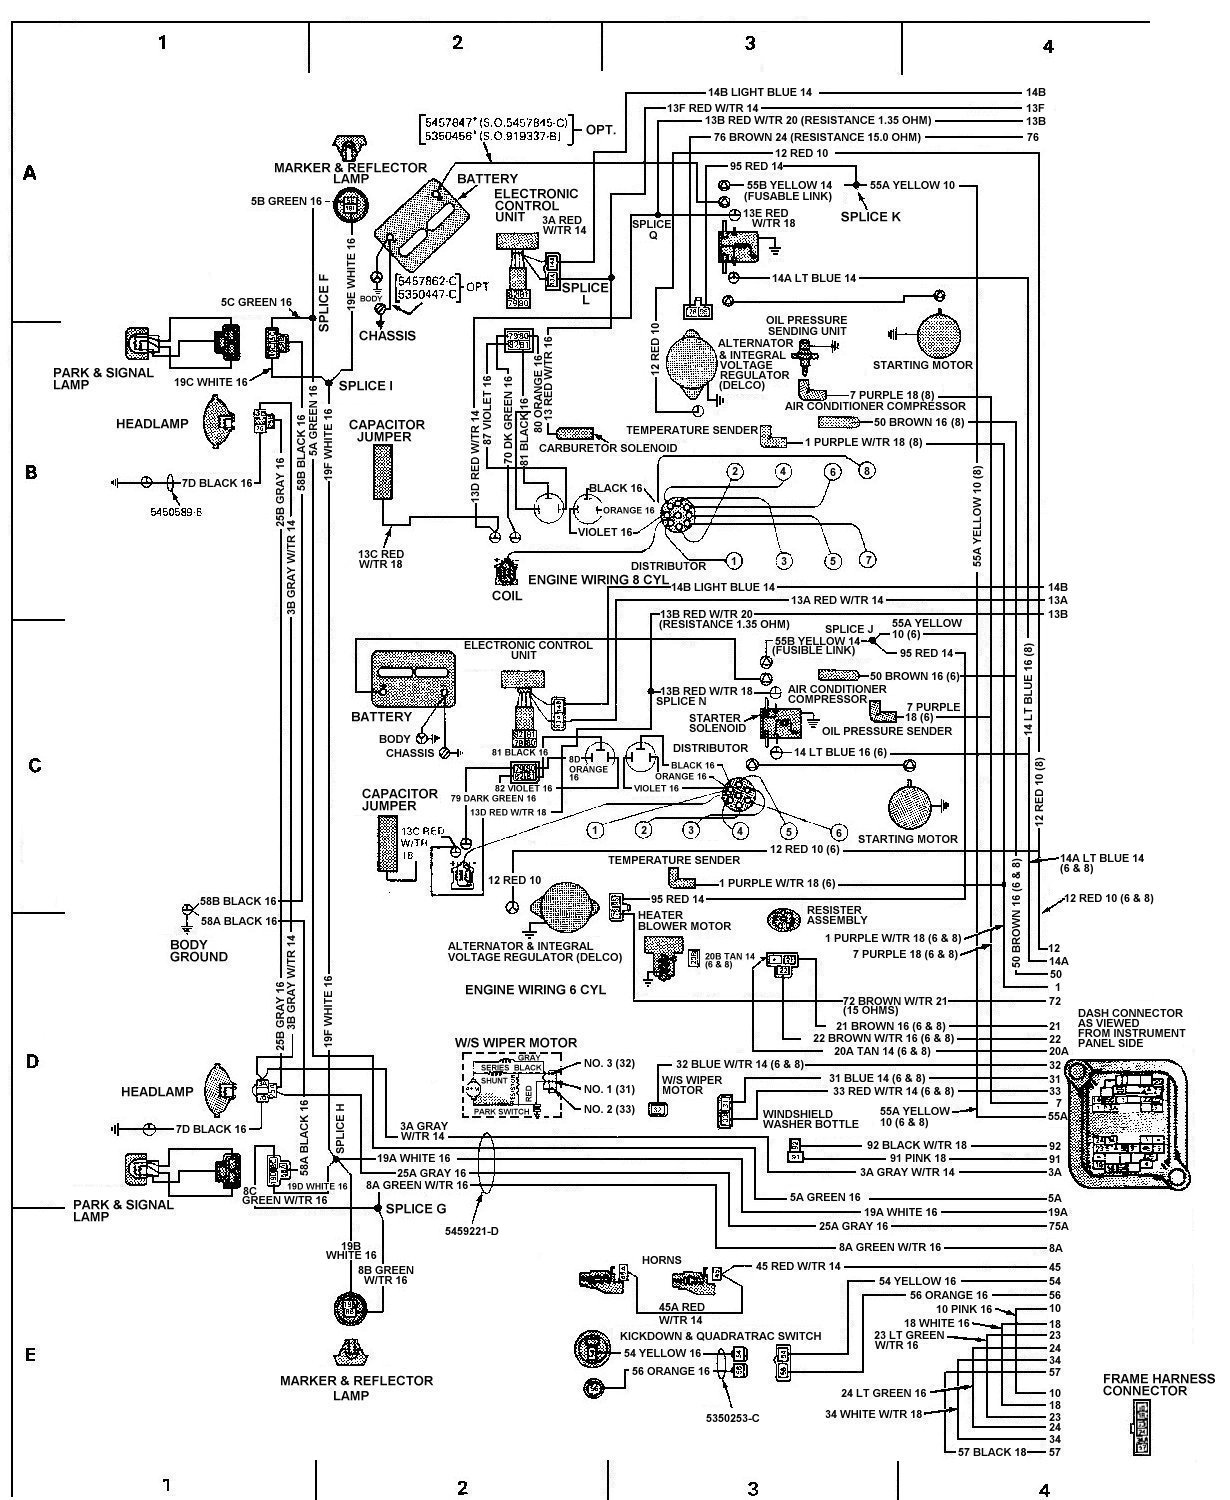 [DIAGRAM_3NM]  Tom 'Oljeep' Collins FSJ Wiring Page | Wiring Diagram For 87 Grand Wagoneer |  | Oljeep